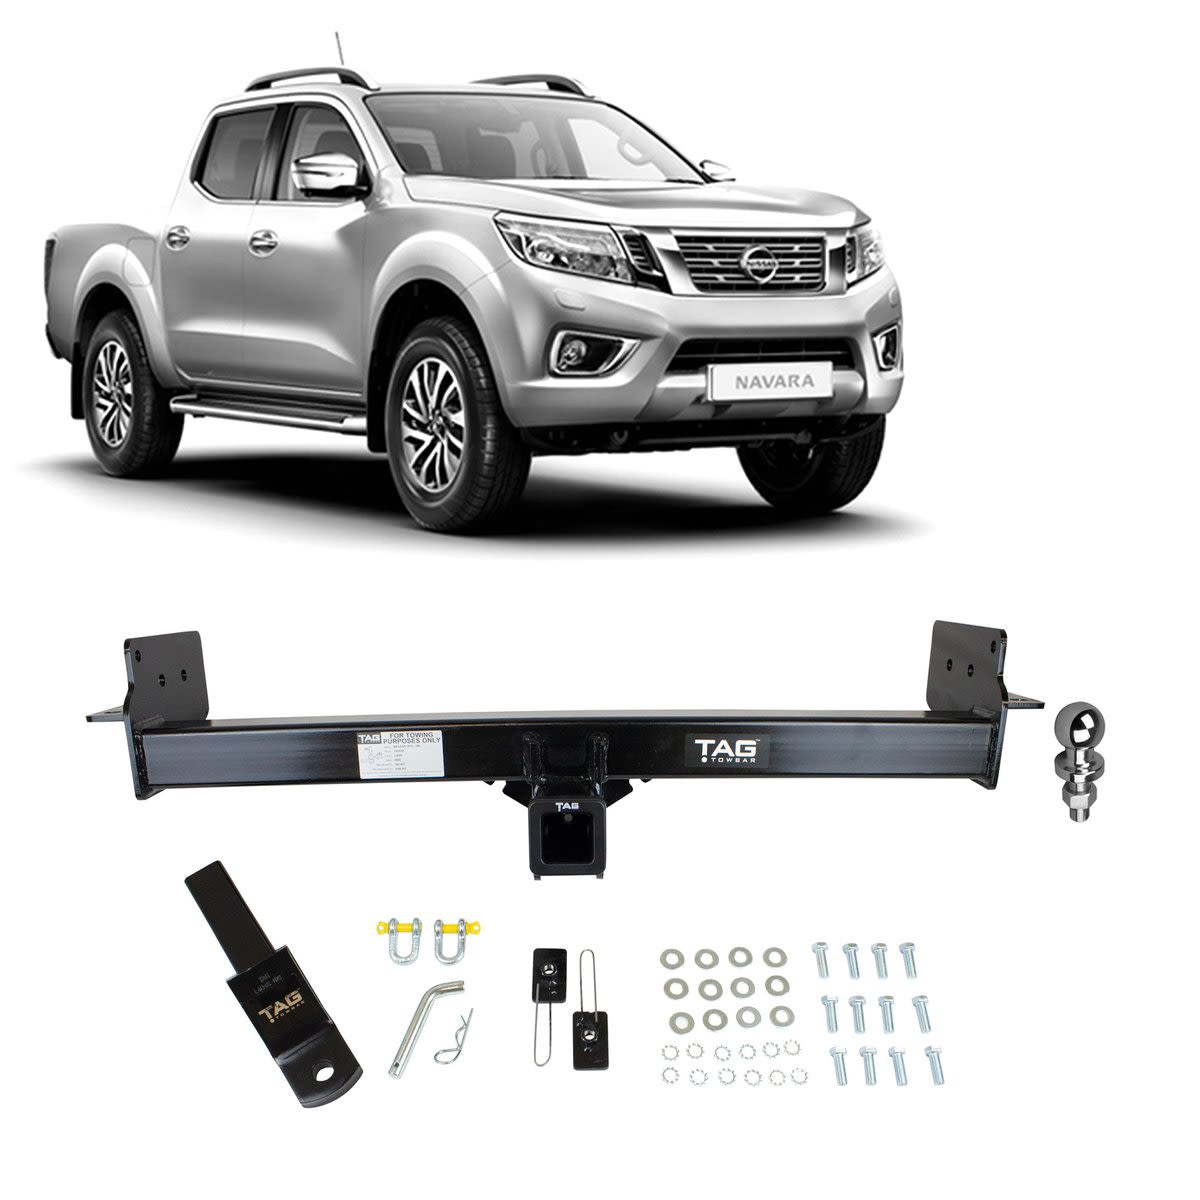 TAG Heavy Duty Towbar to suit Nissan Navara (07/2015 - on) - No Wiring Harness